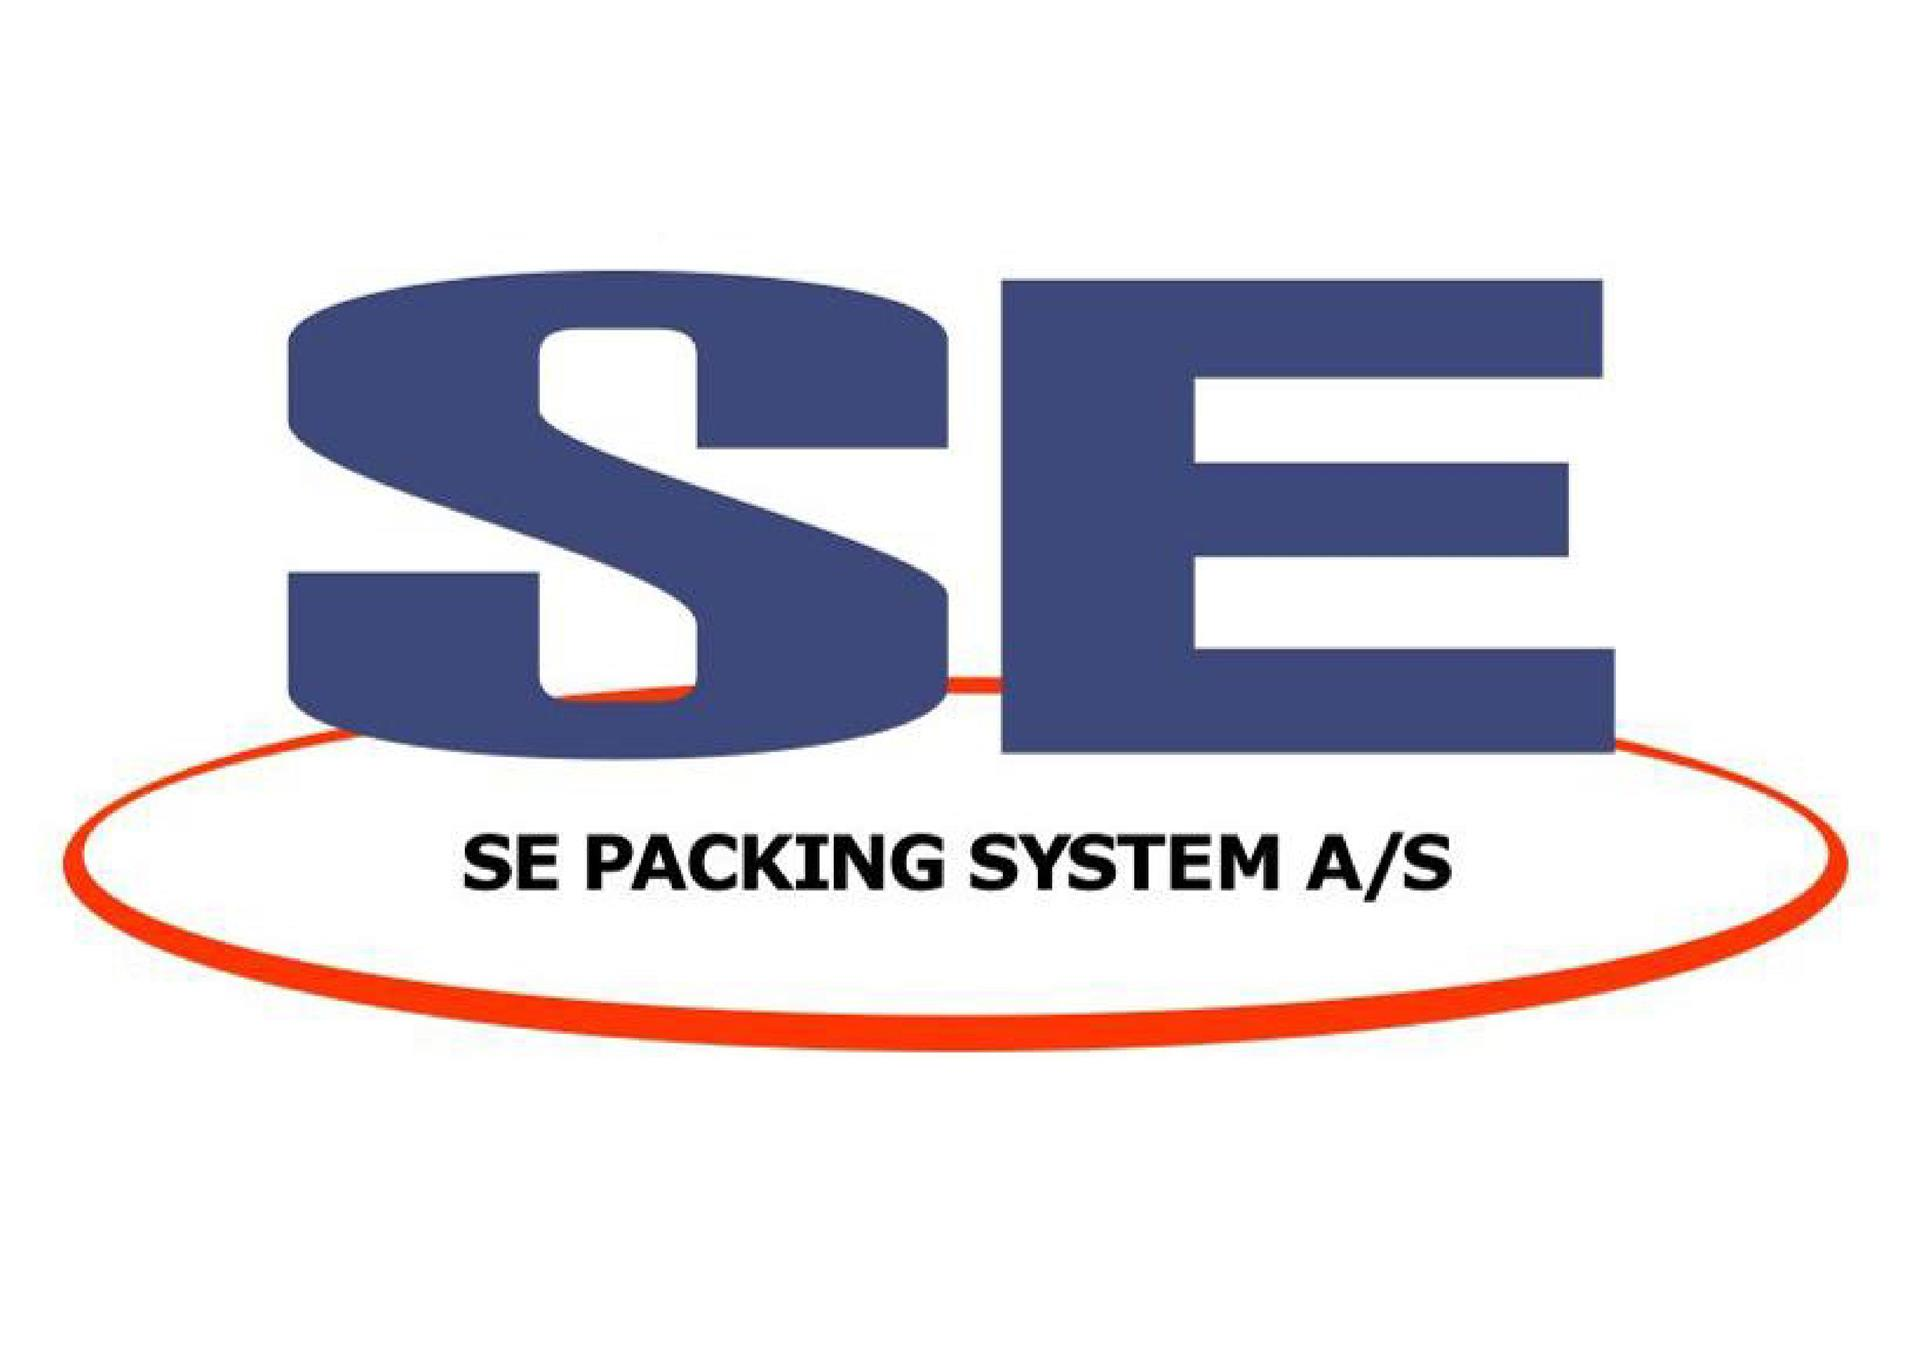 SE Packing A/S